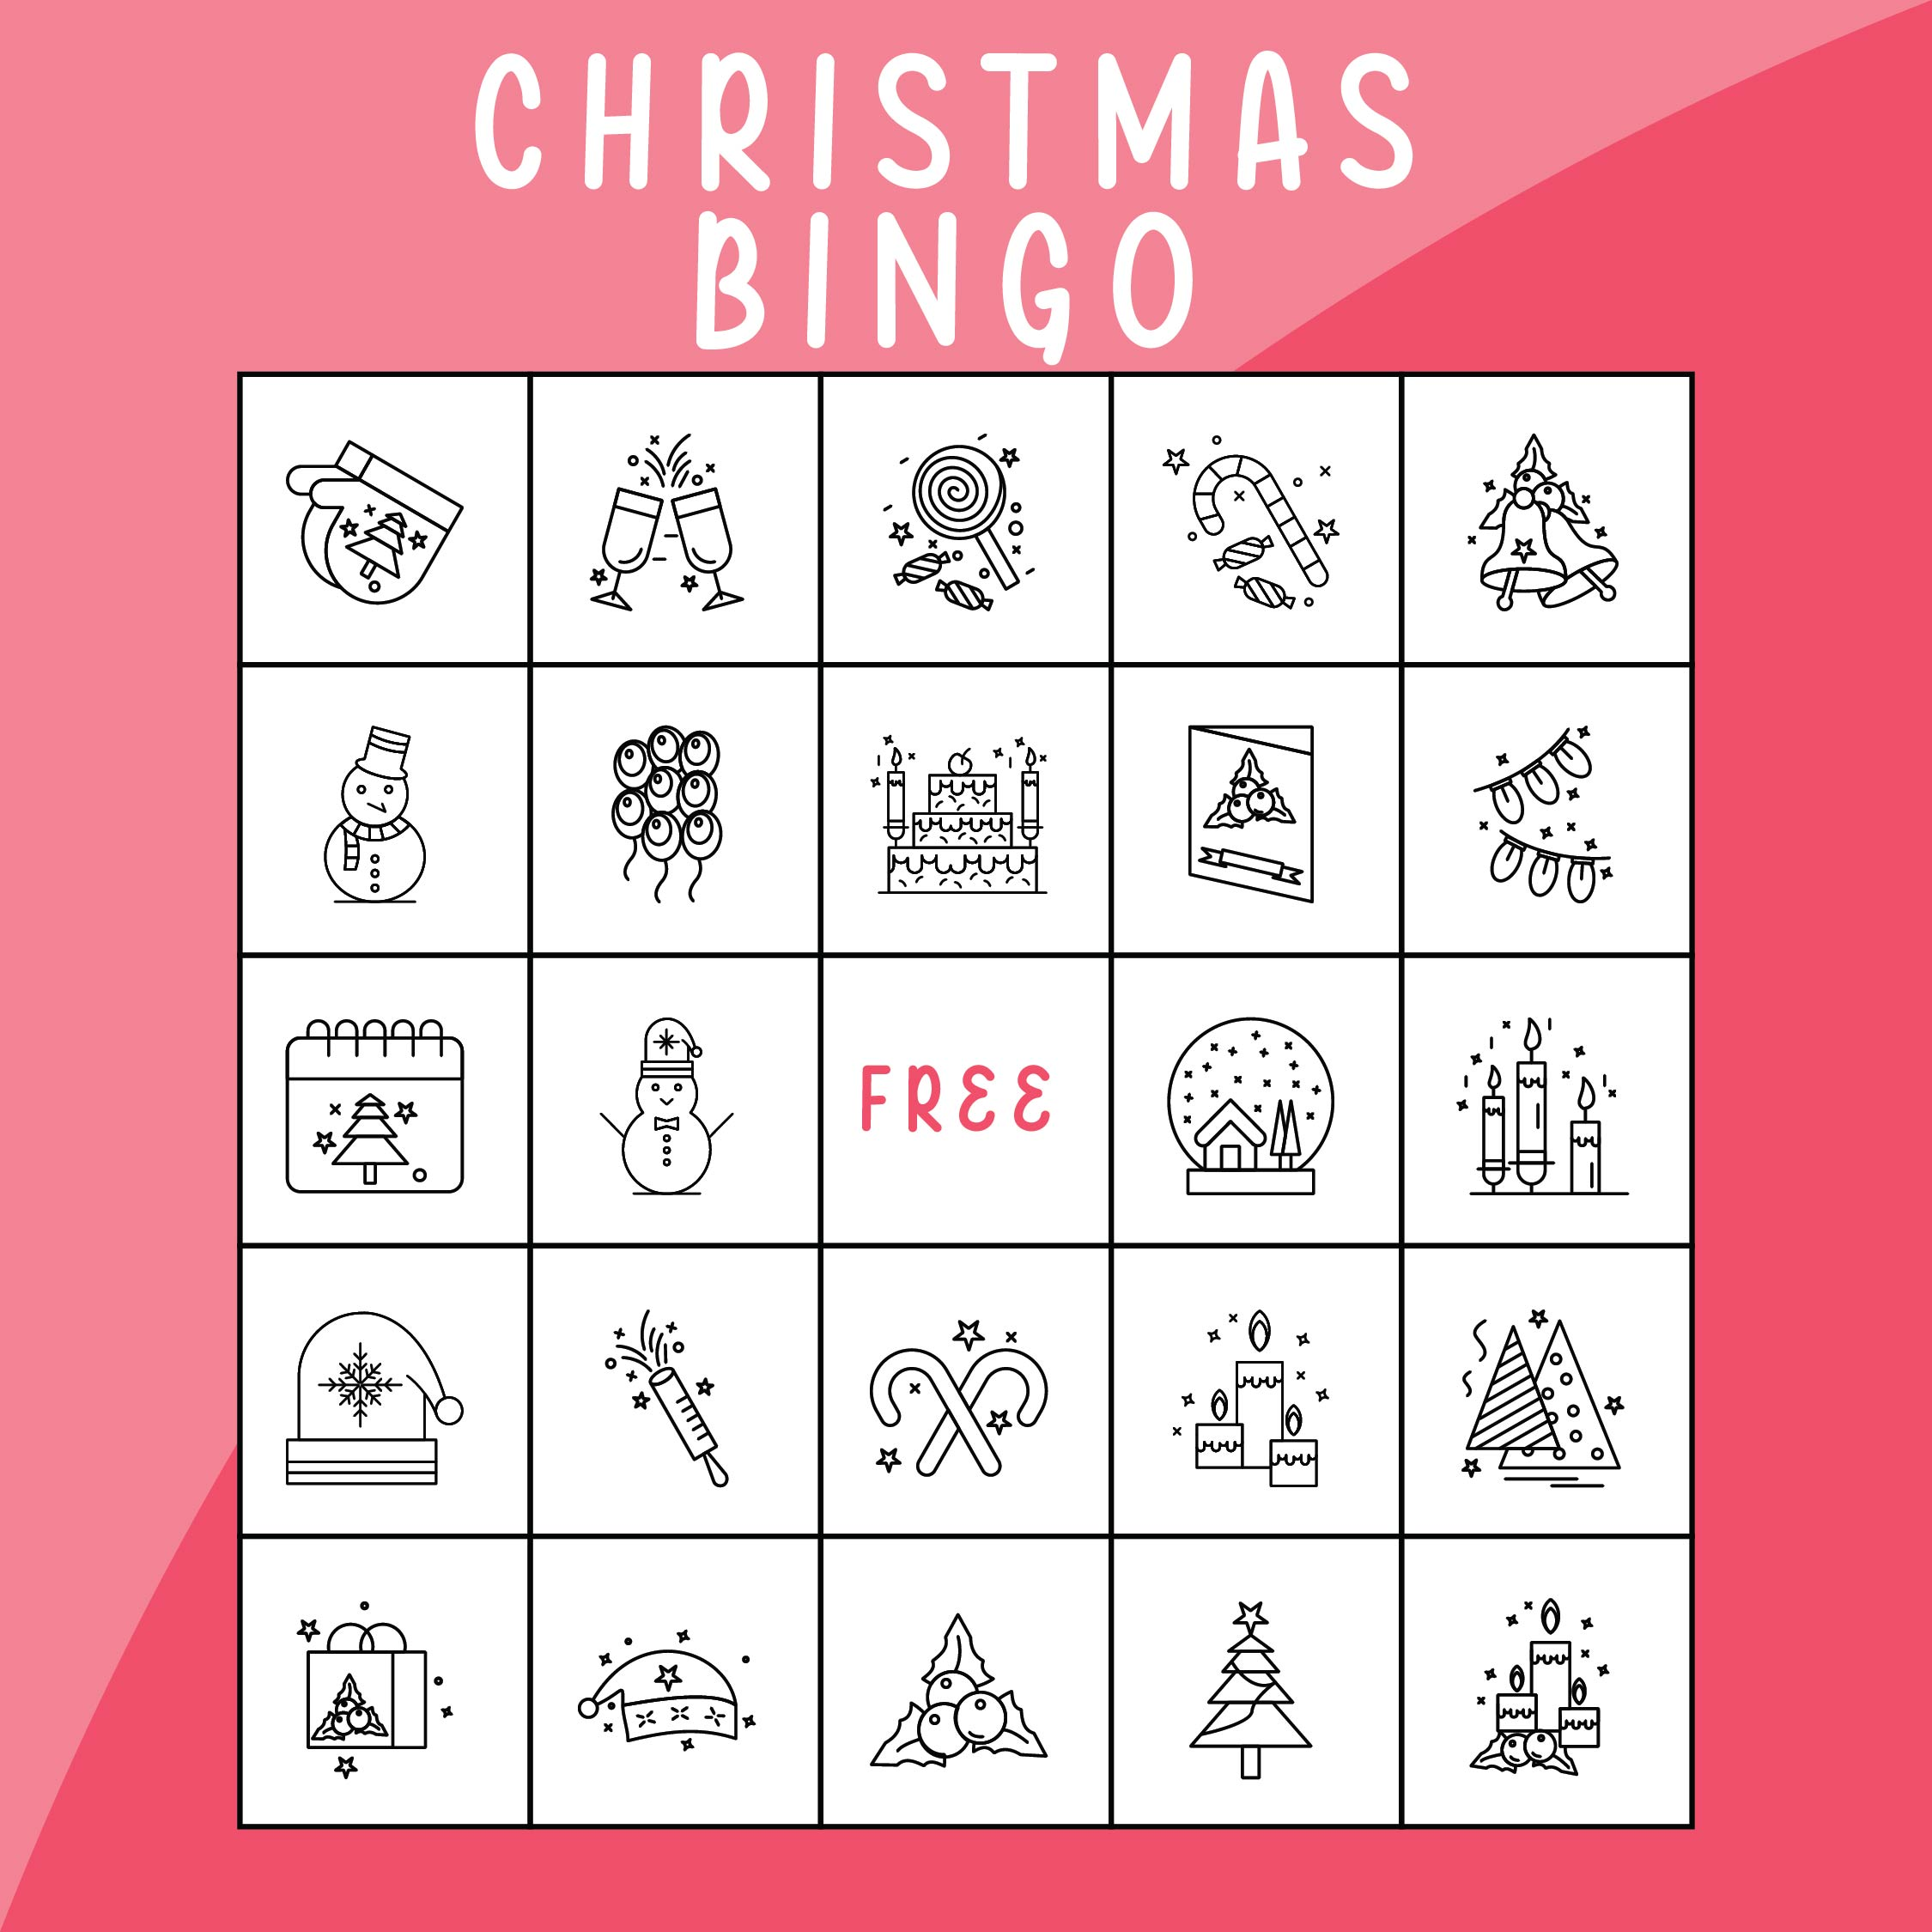 9 Images of Free Printable Christian Christmas Bingo Cards